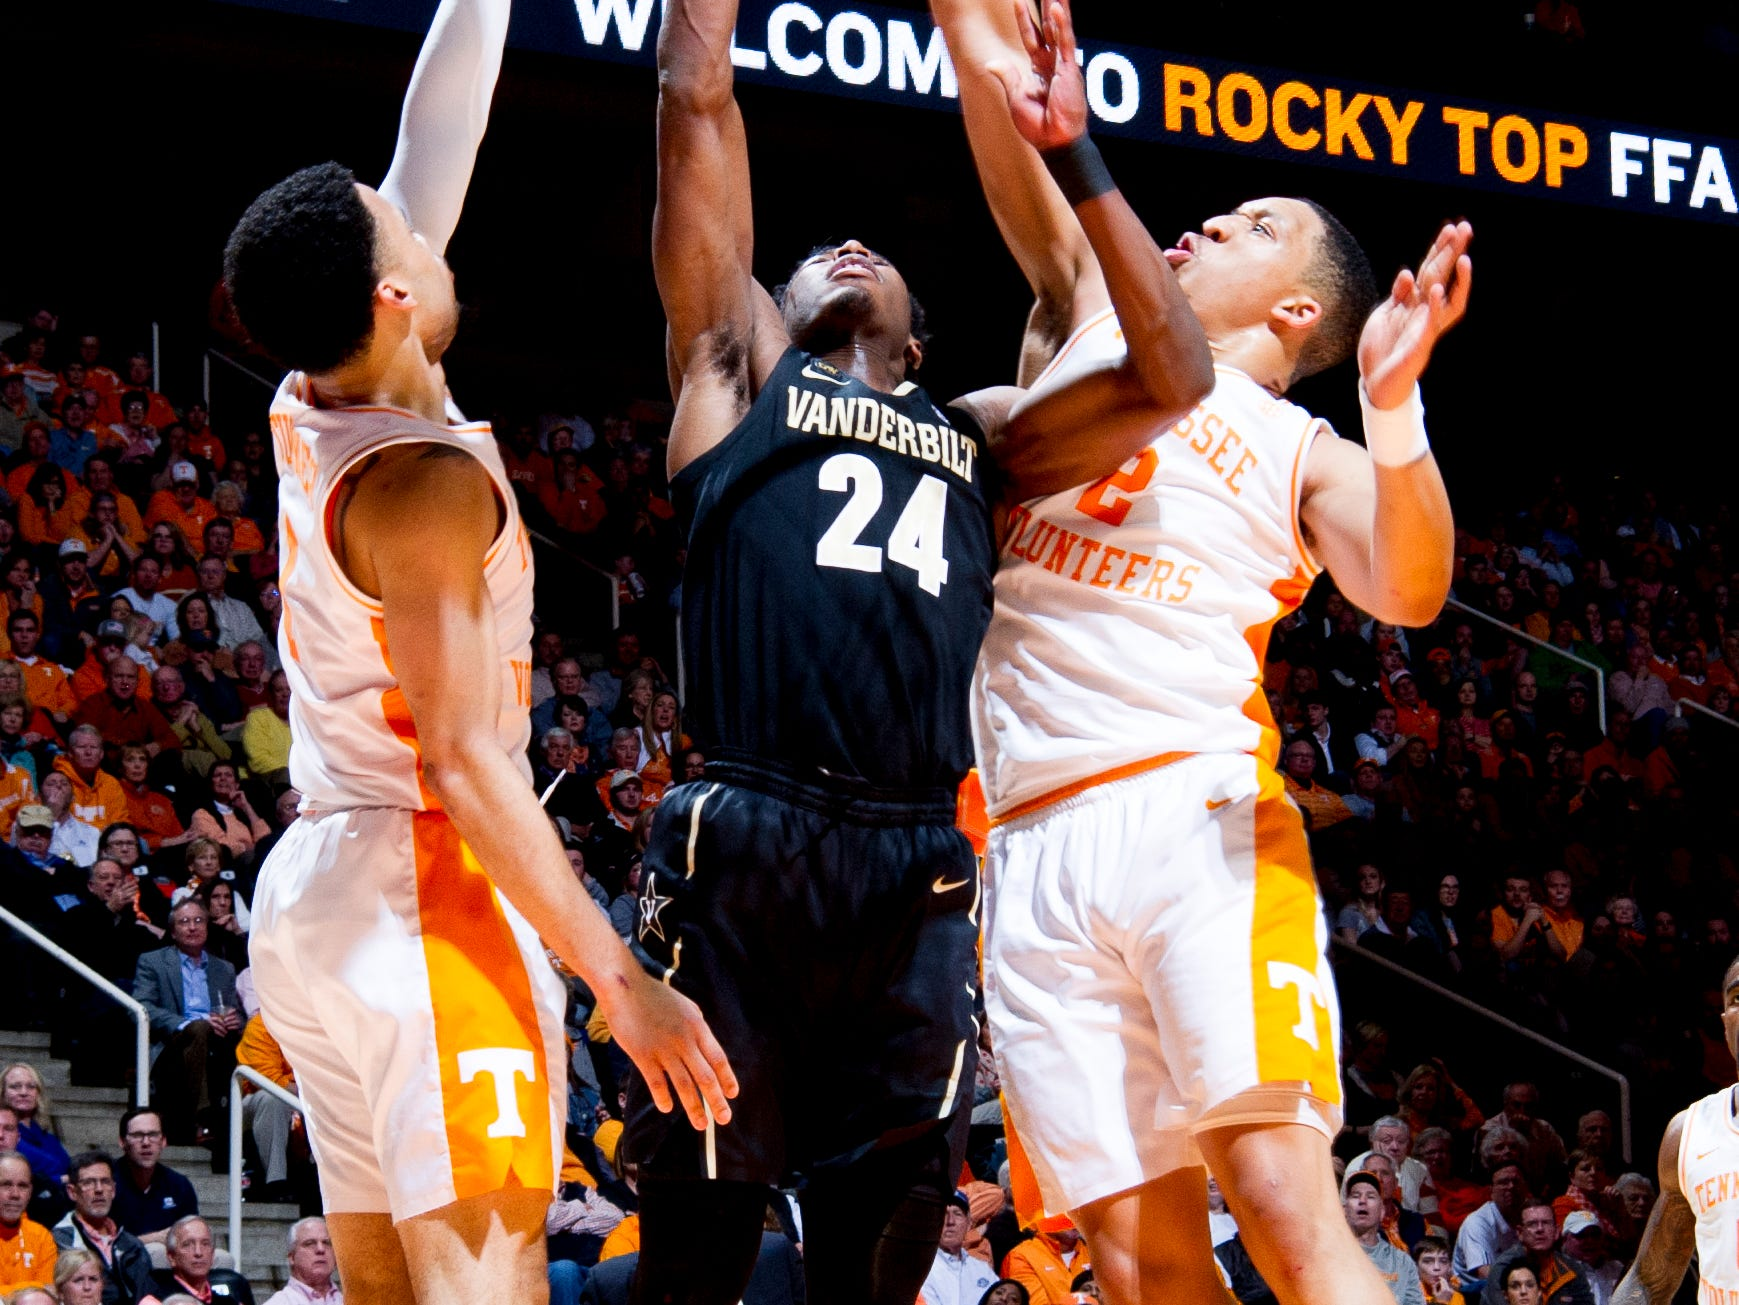 Vanderbilt forward Aaron Nesmith (24) goes for a shot as Tennessee guard Lamonte Turner (1) and Tennessee forward Grant Williams (2) defend during a game between Tennessee and Vanderbilt at Thompson-Boling Arena in Knoxville, Tennessee on Tuesday, February 19, 2019.